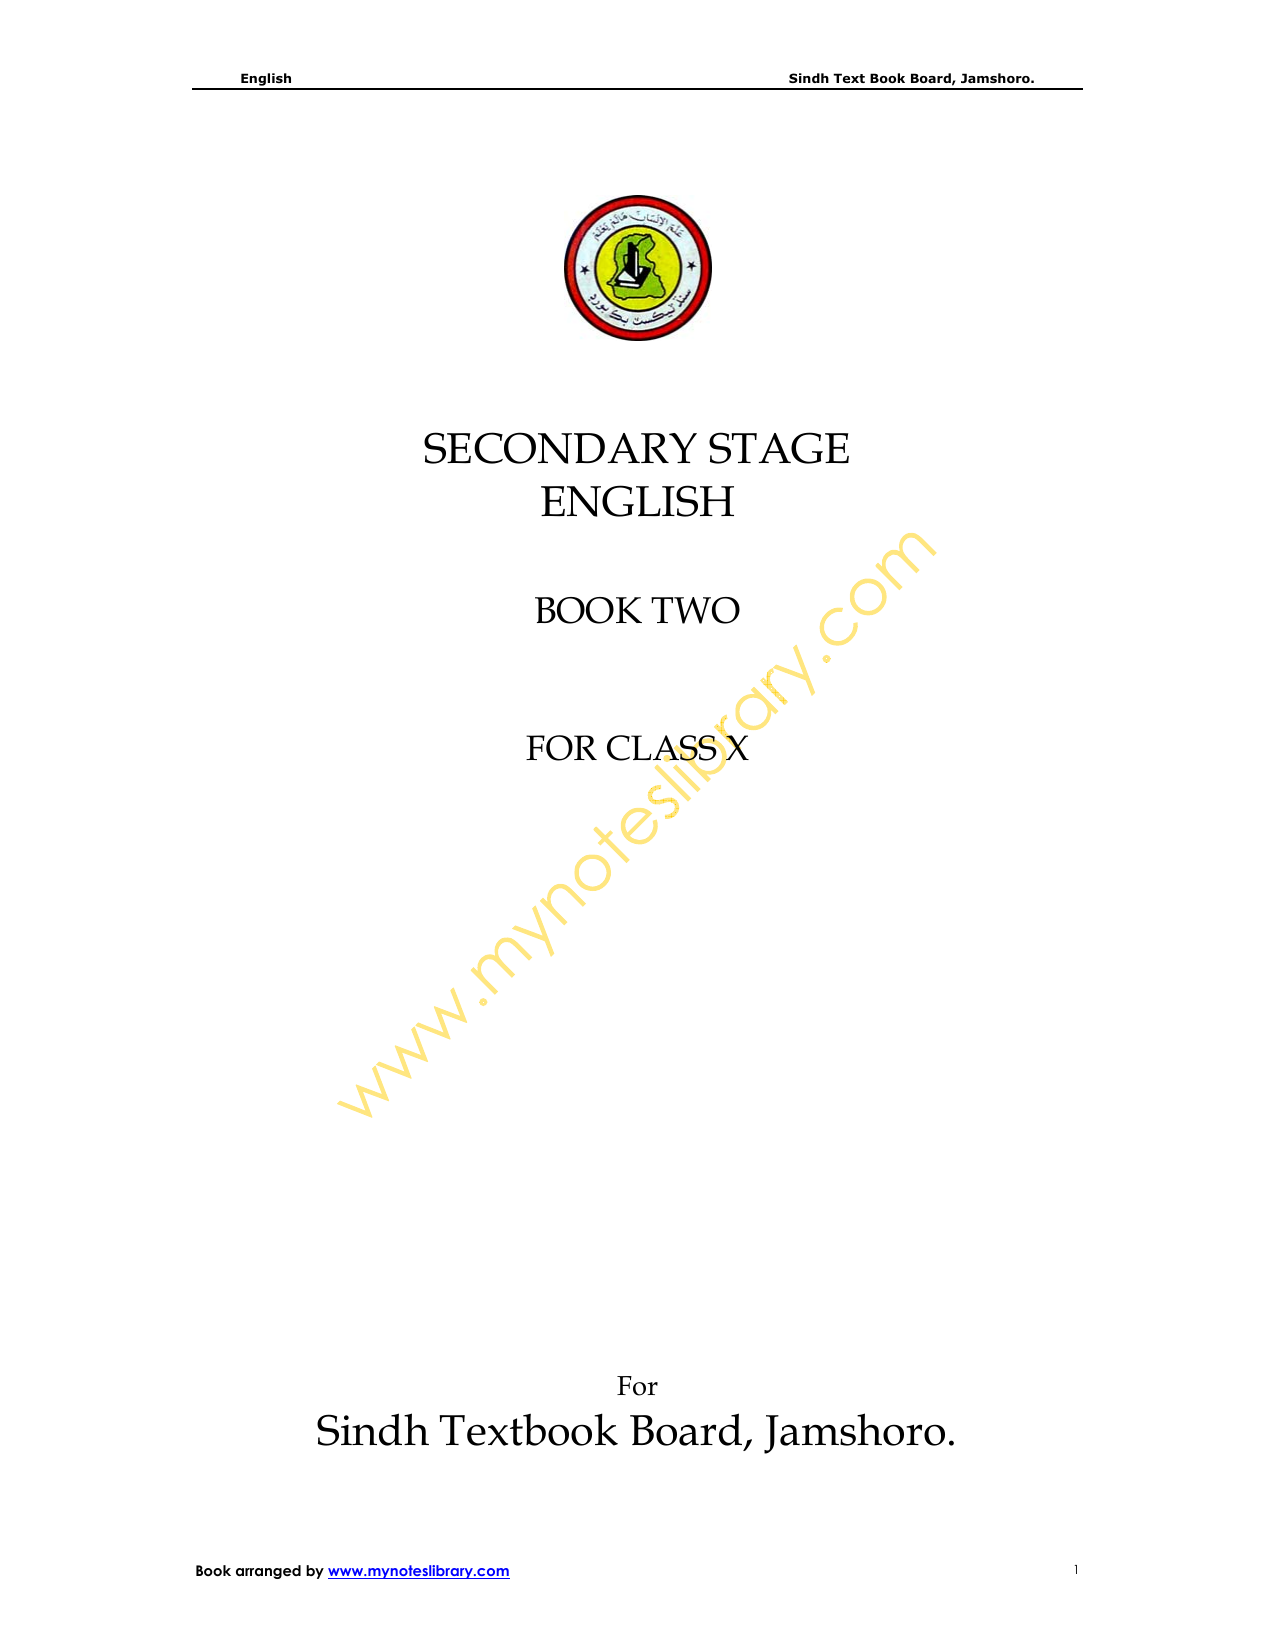 SECONDARY STAGE ENGLISH Sindh Textbook Board, Jamshoro